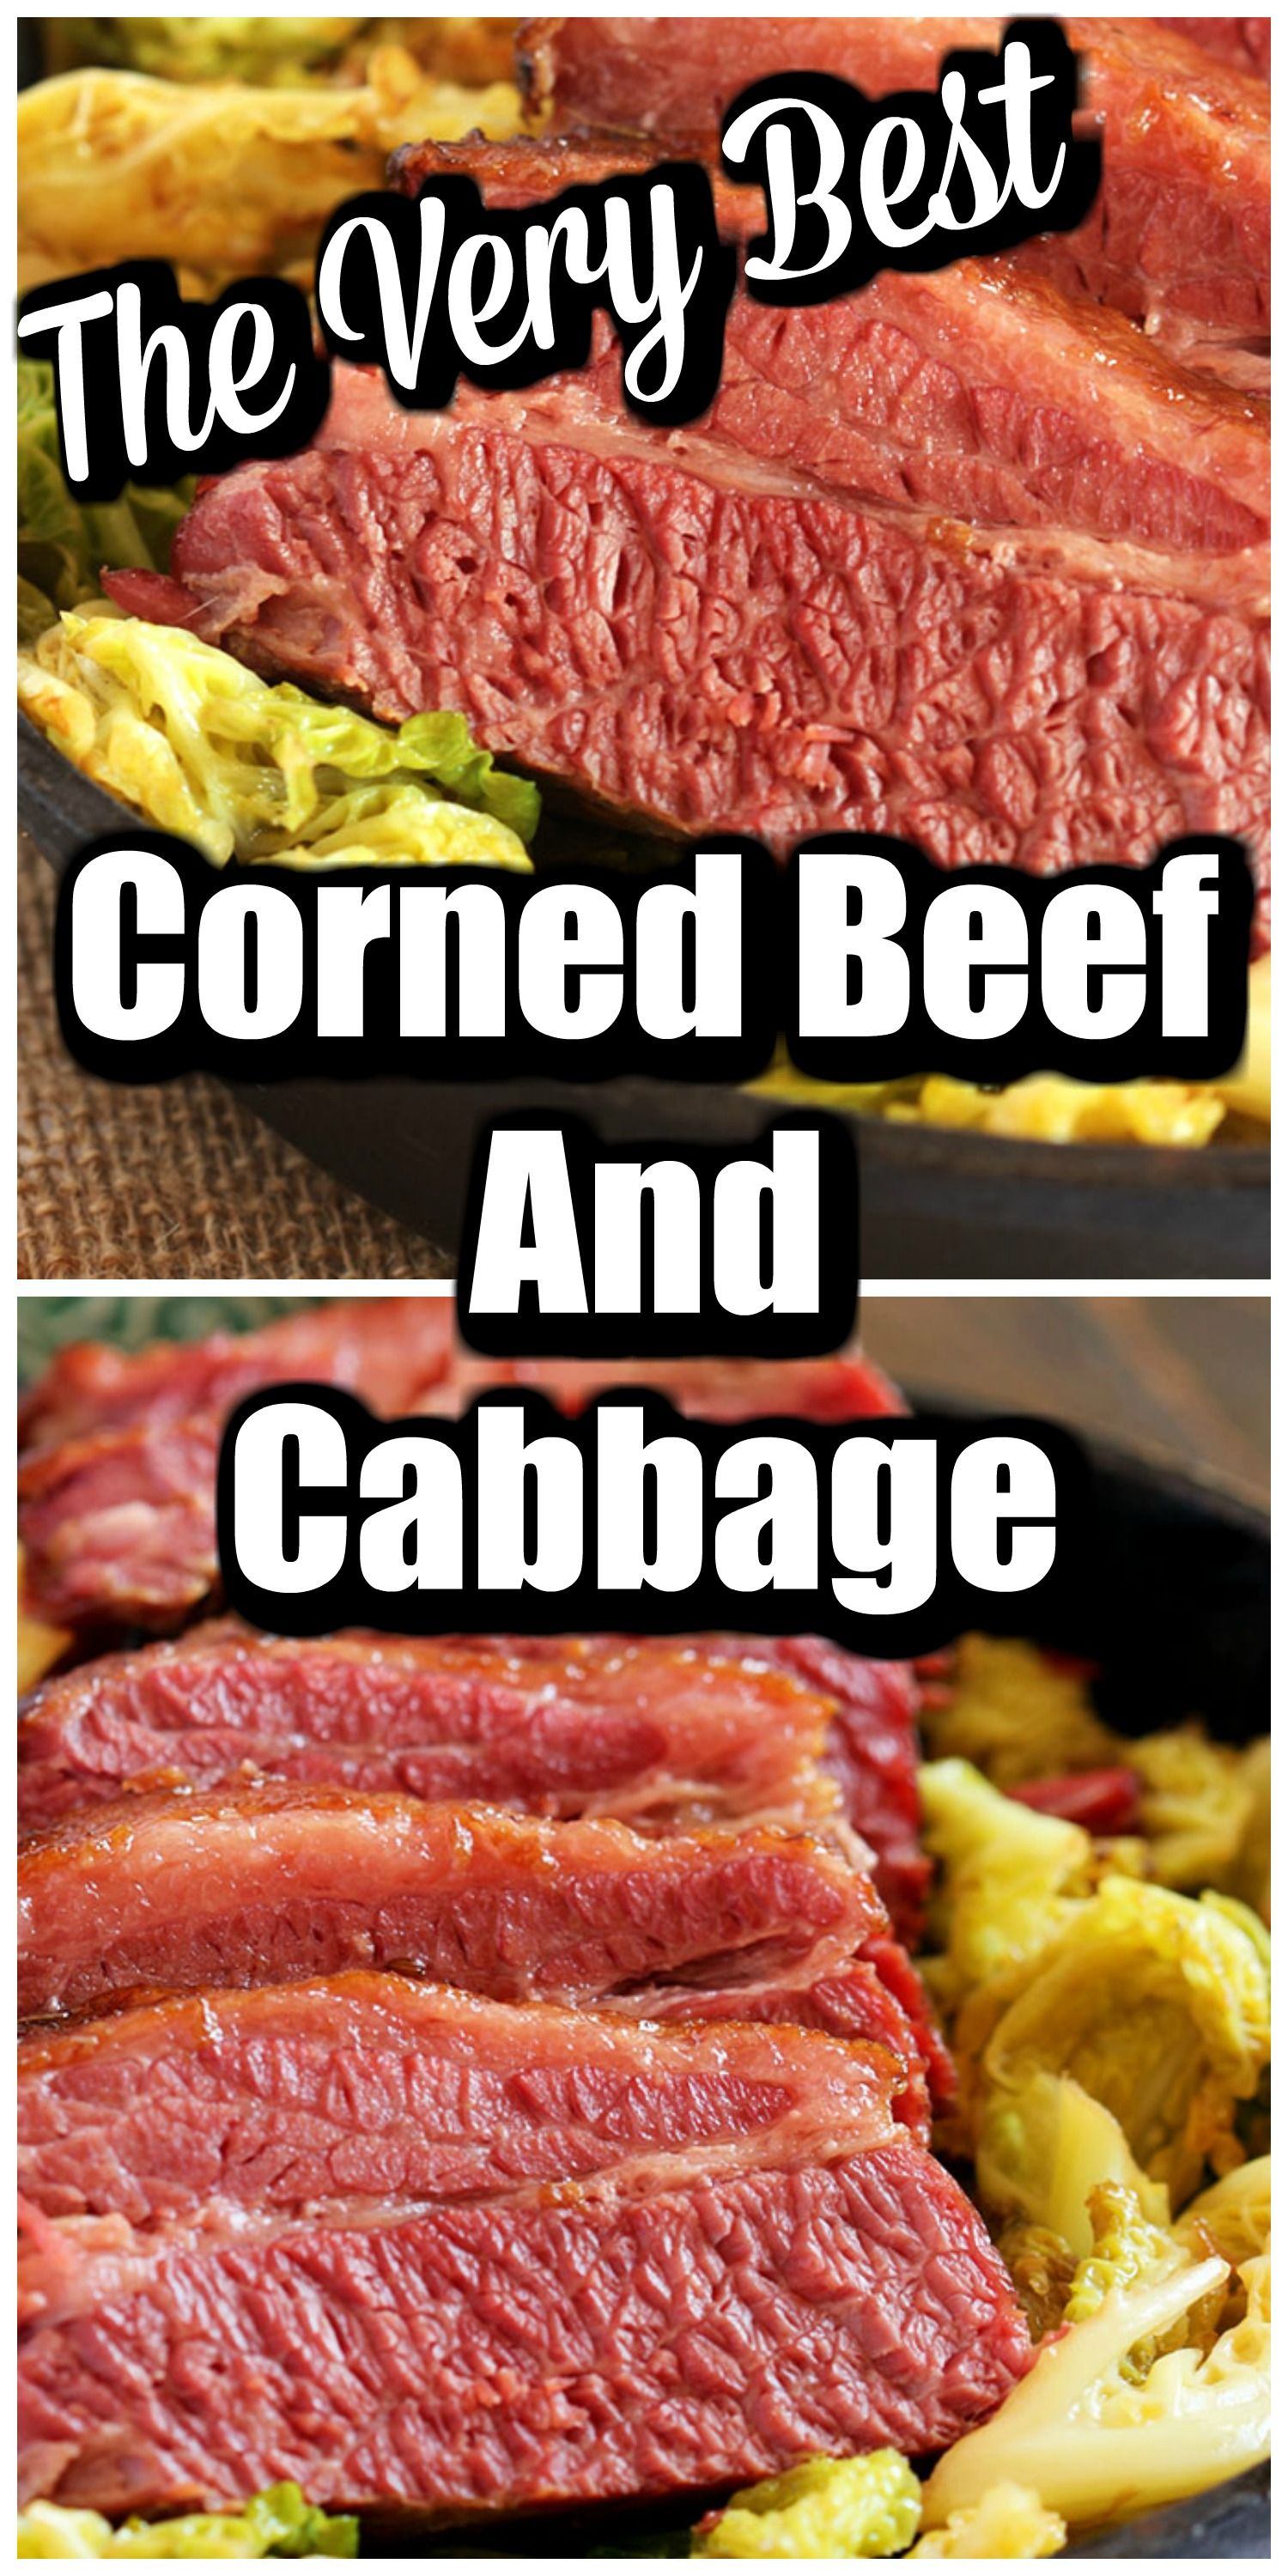 The Very Best Corned Beef And Cabbage The Suburban Soapbox Recipe In 2020 Corned Beef Recipes Slow Cooker Corn Beef And Cabbage Best Corned Beef Recipe